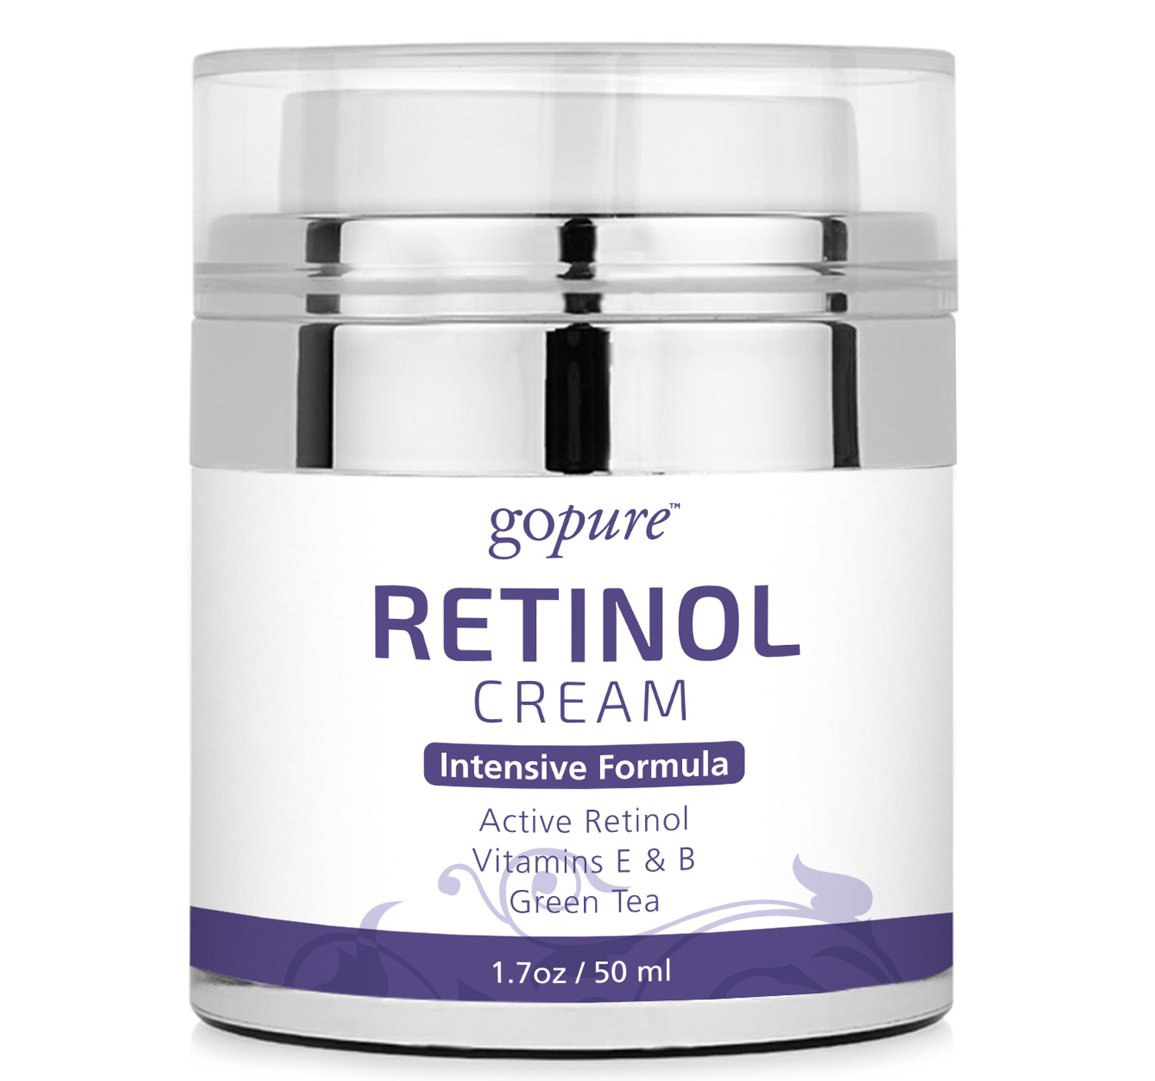 goPure Retinol Cream for Face - Anti Aging Retinol - Anti Wrinkle Retinol Moisturizer - Airless Jar - 1.7oz